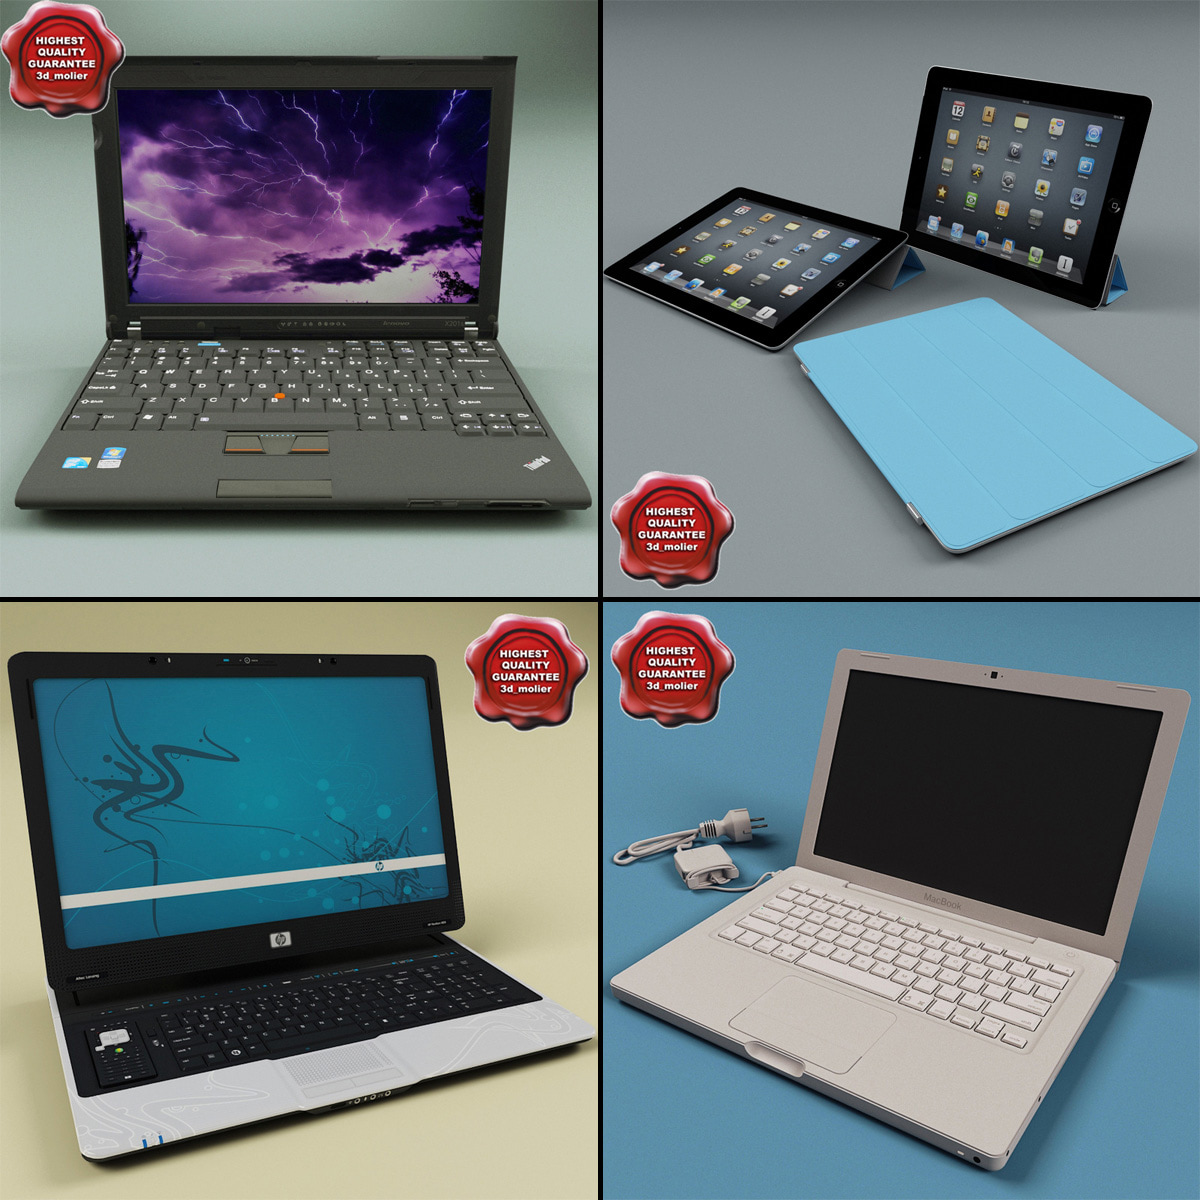 Laptops_Collection_V2_000.jpg